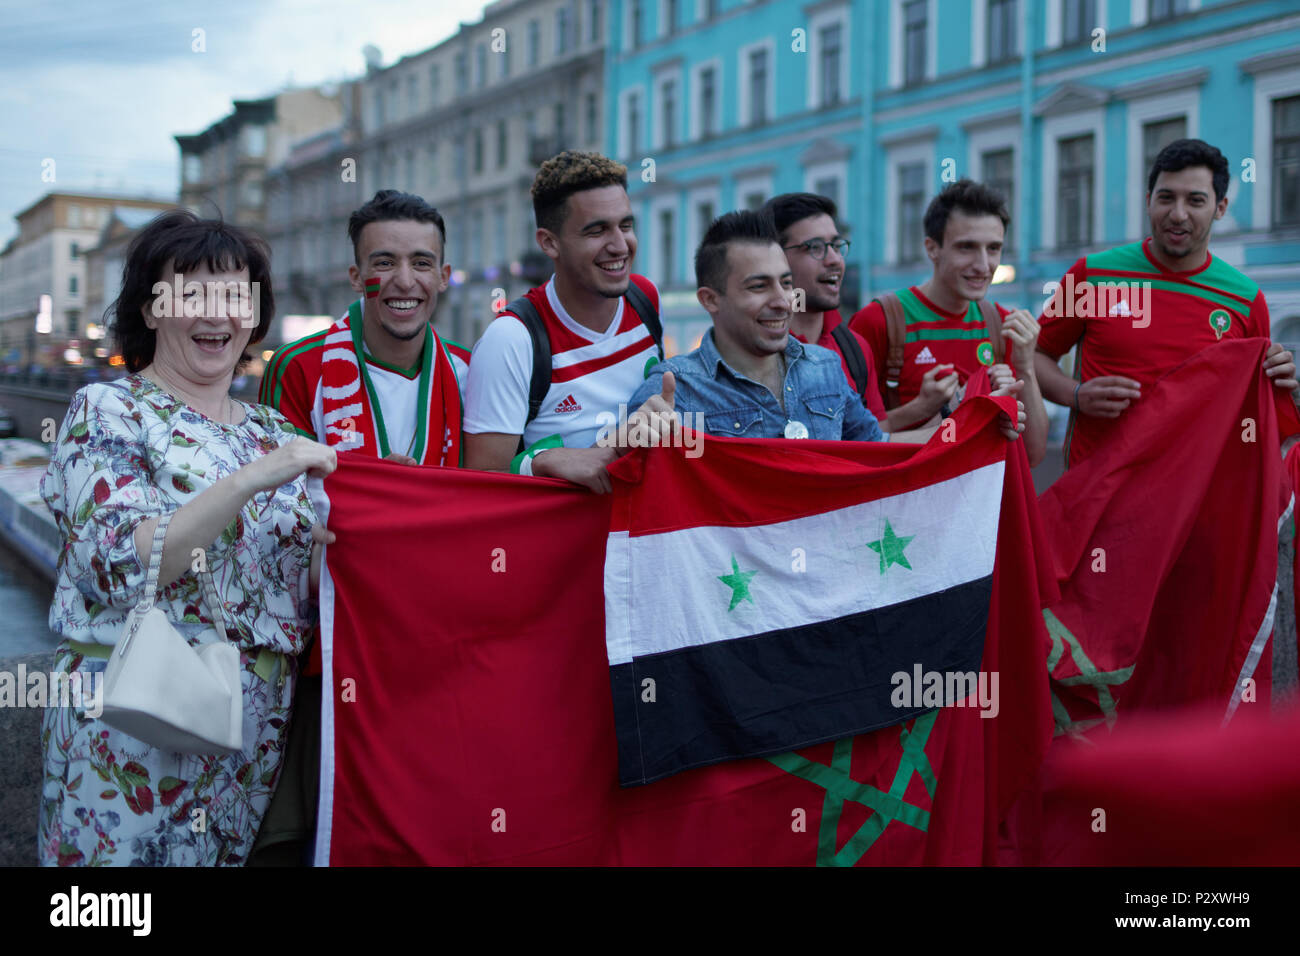 St. Petersburg, Russia - June 15, 2018: Moroccan football fans with flag in Saint Petersburg on the day of first match of FIFA World Cup 2018 in the c - Stock Image